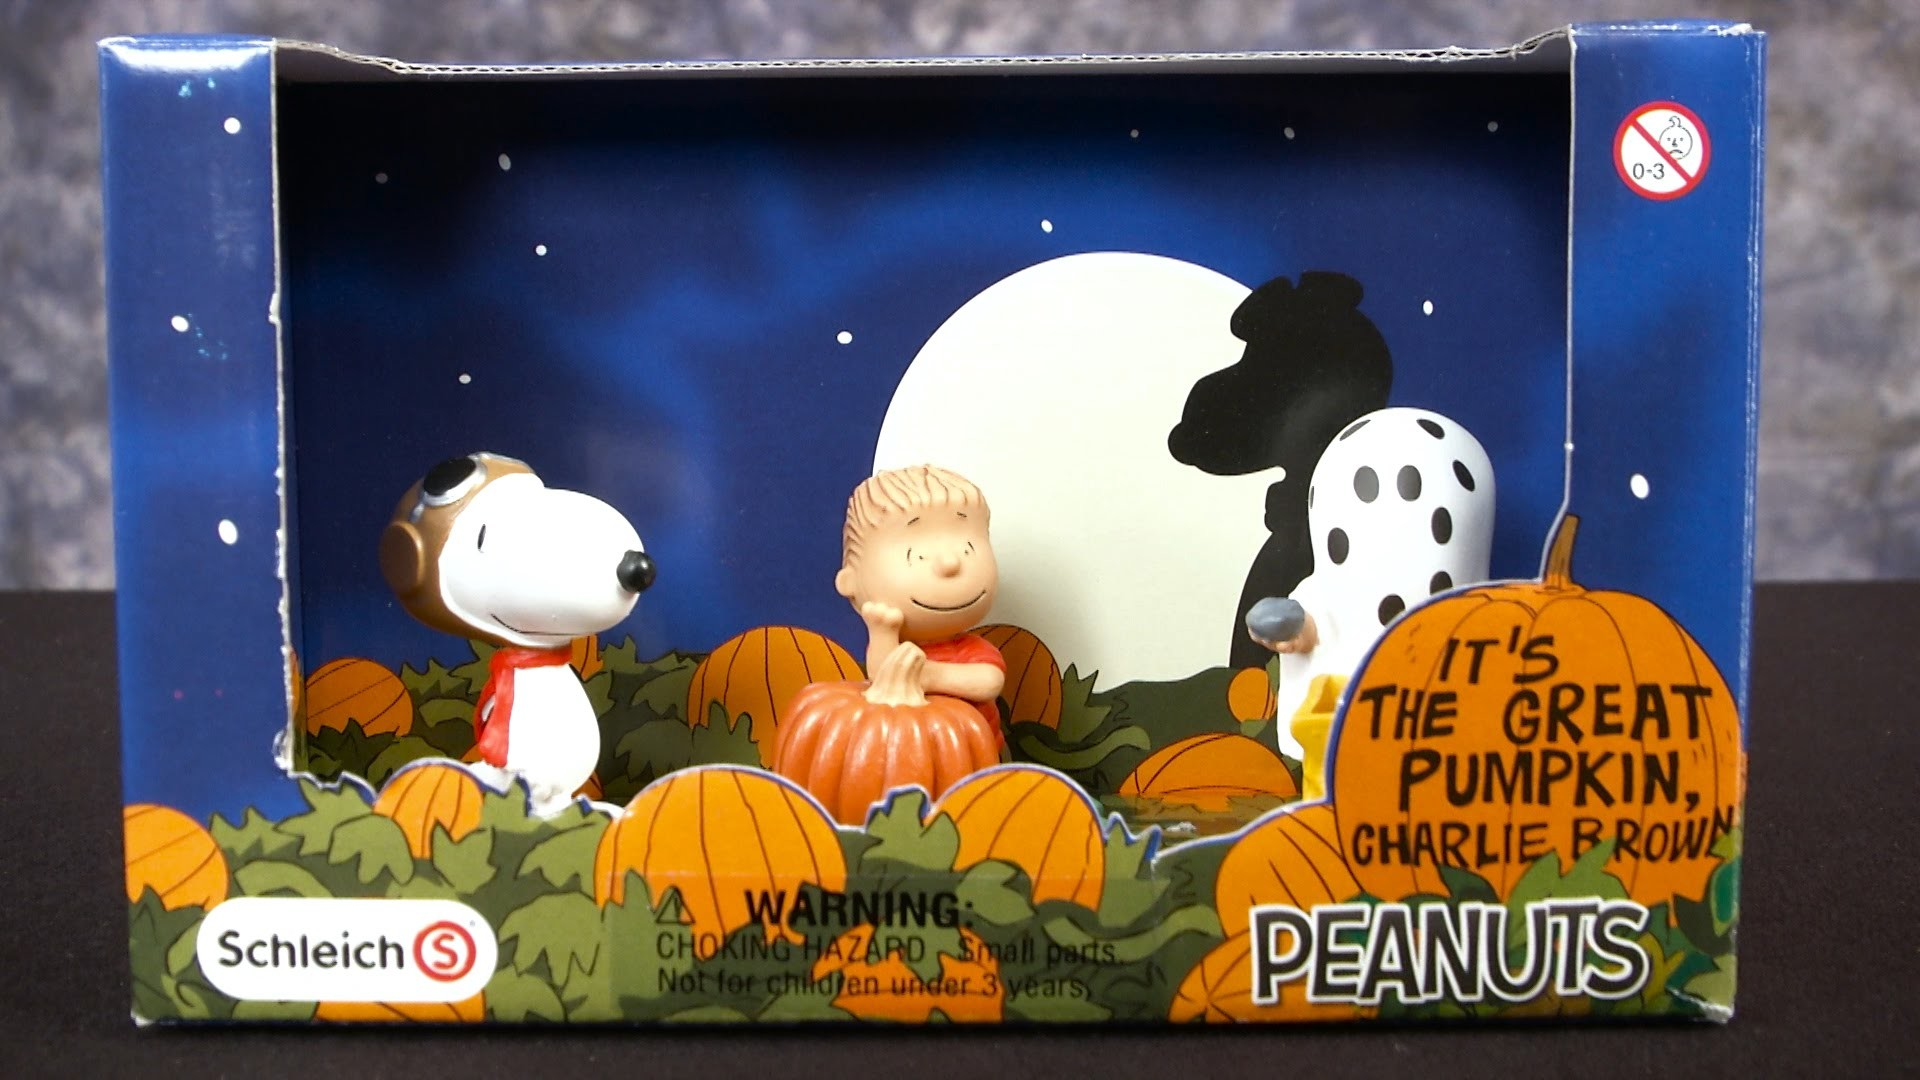 1920x1080 Peanuts It's The Great Pumpkin, Charlie Brown Figure Set from Schleich -  YouTube